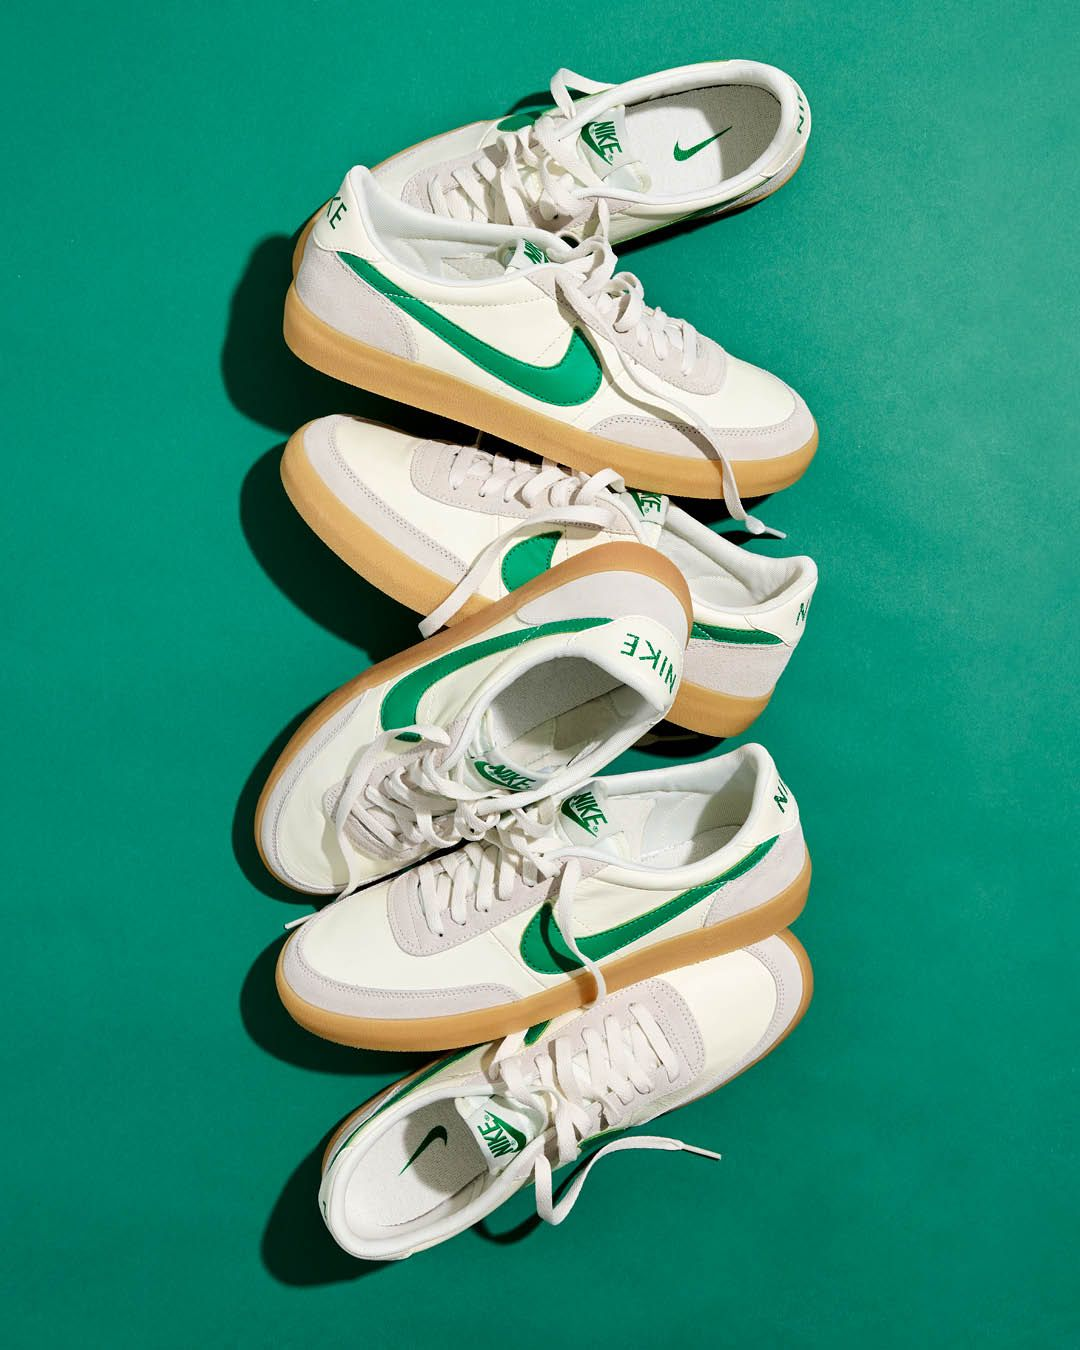 J.Crew Just Released an All-New Green Colorway of the Killshot 2 Sneaker